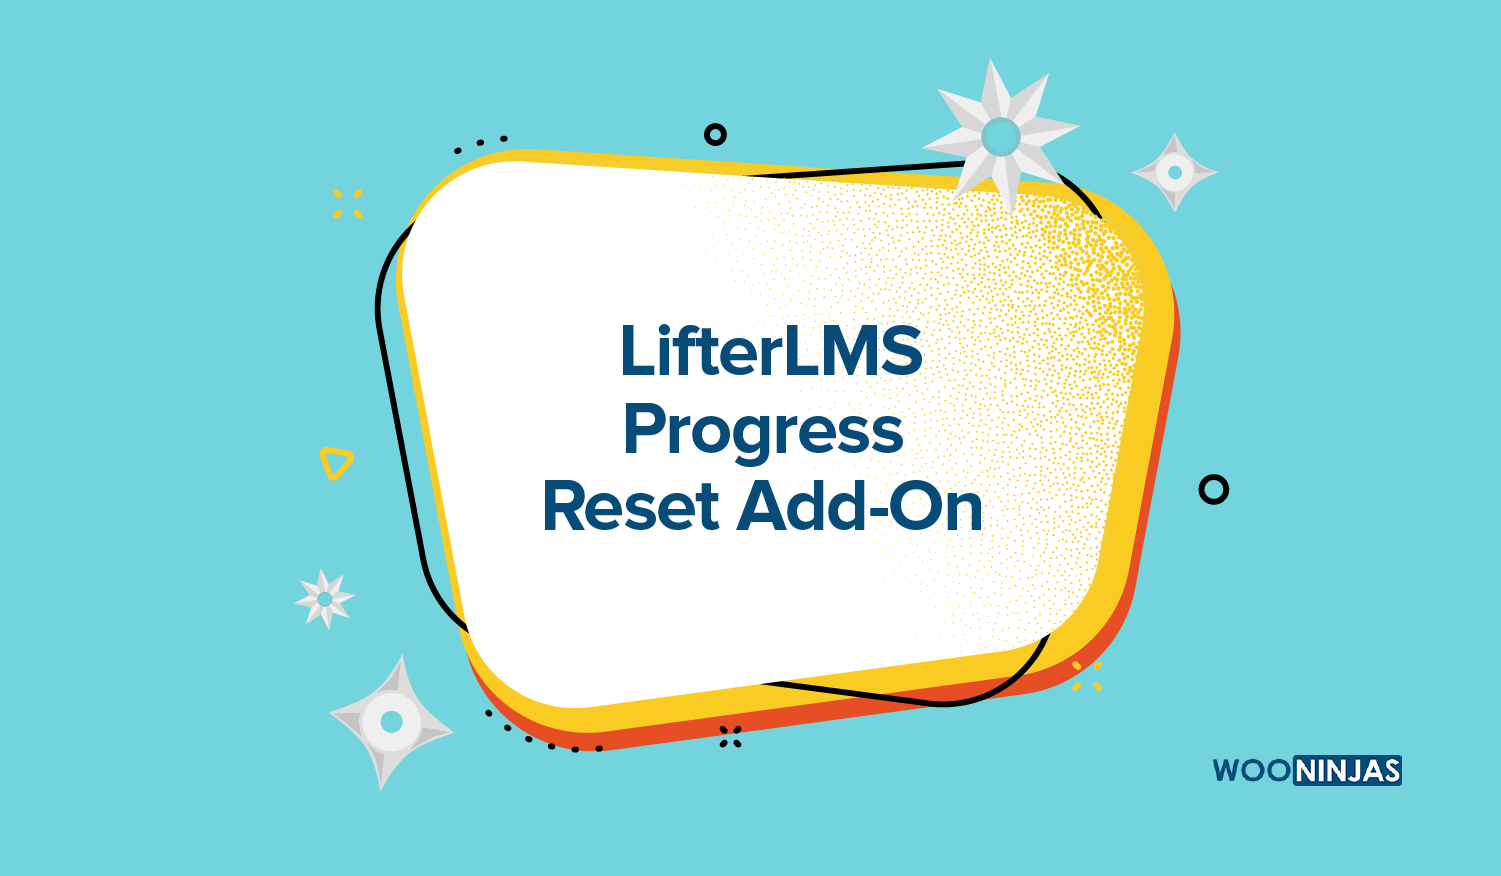 lifterlms progress reset